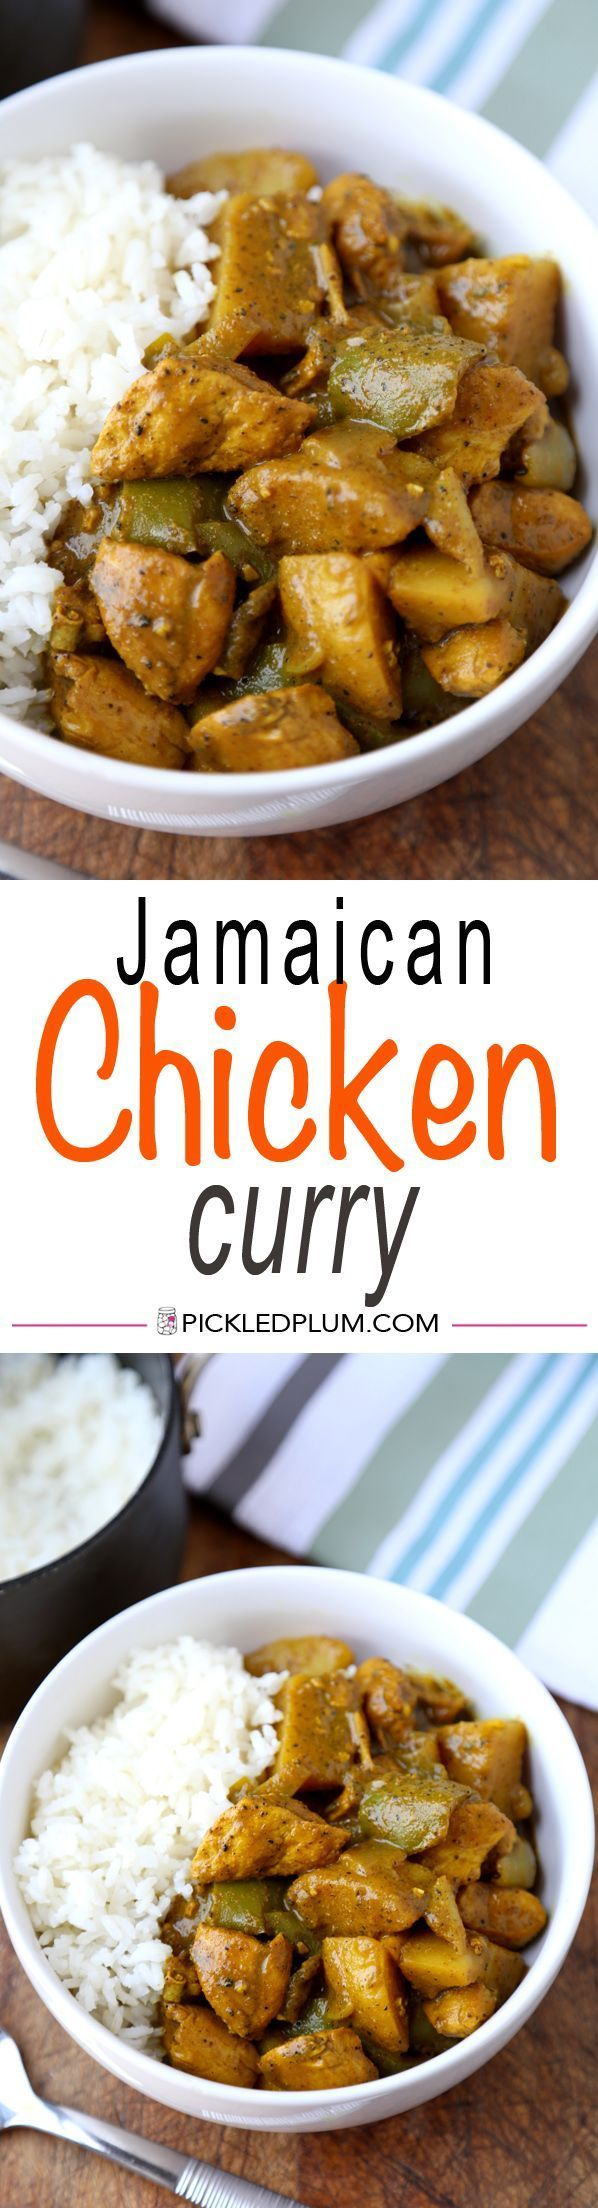 Jamaican Chicken Curry Recipe - Hot and Spicy! Easy curry recipe with assertive flavors. Simple, tasty | http://pickledplum.com